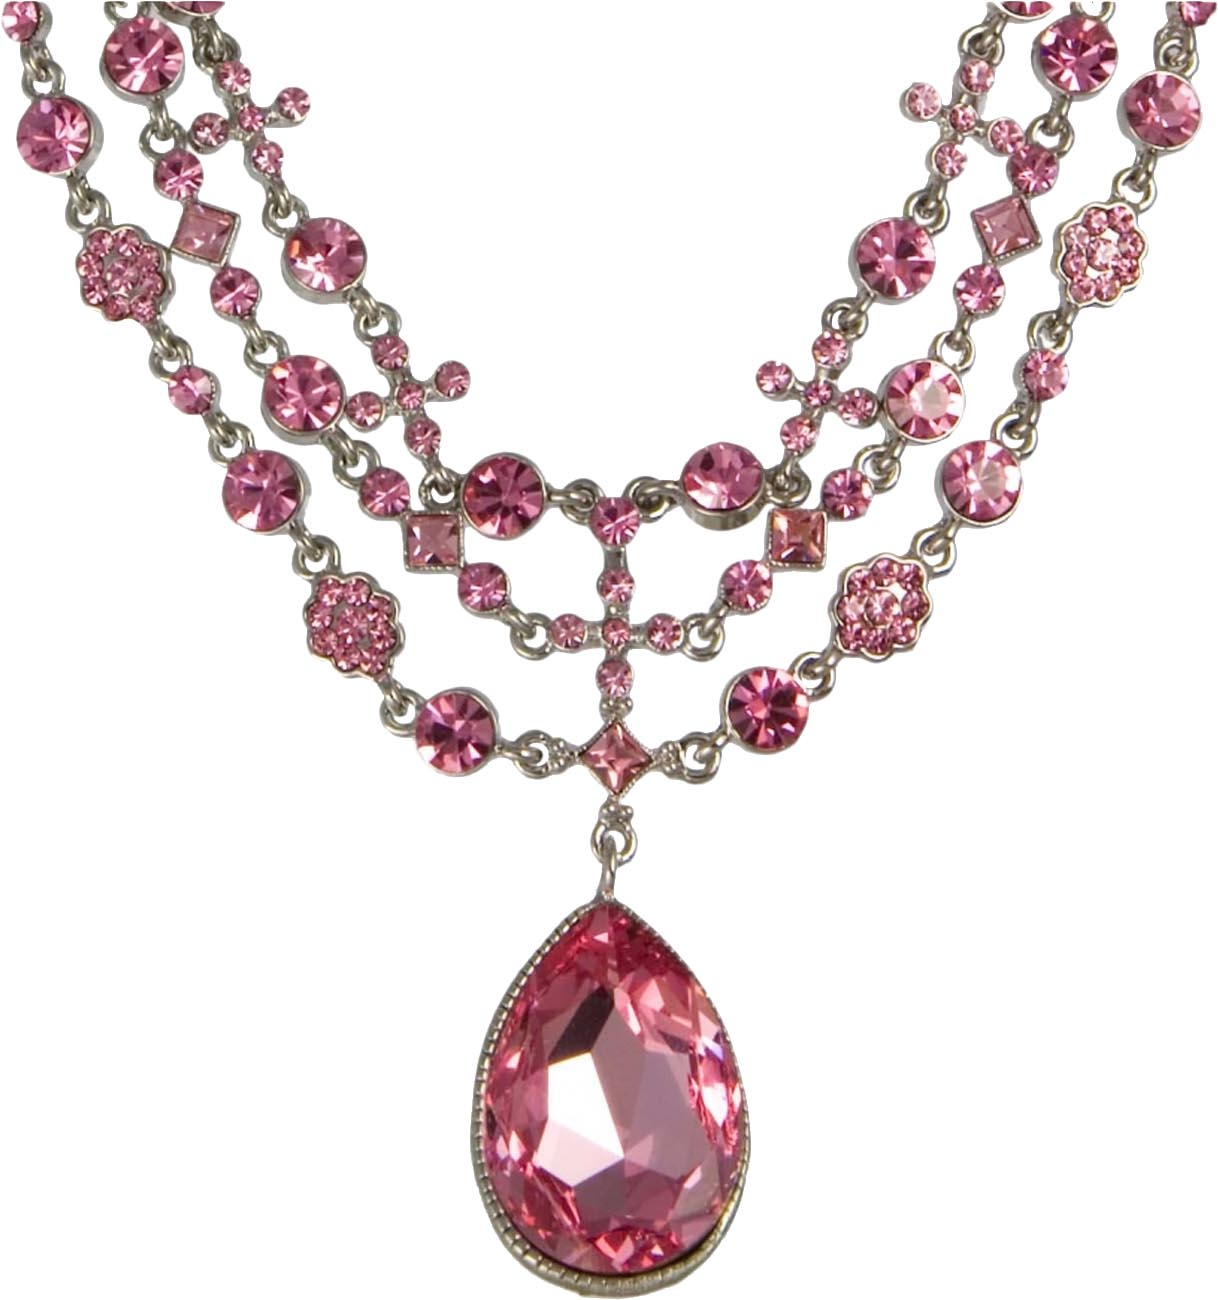 Pendent clipart diamond necklace Anavrin2010 Anavrin2010 Pink on Necklace